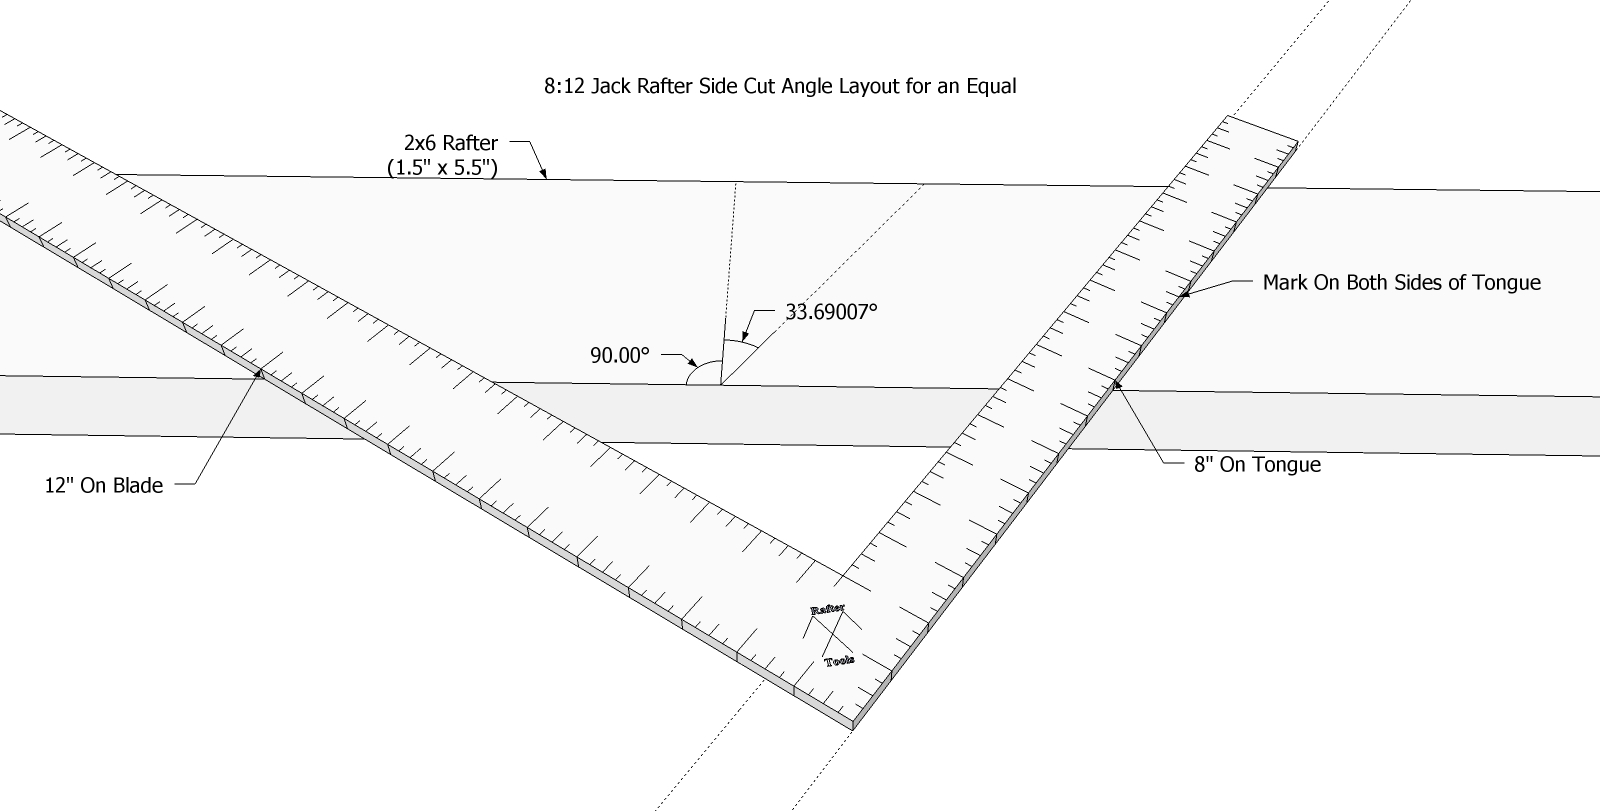 Roof Framing Geometry: How to Layout Jack Rafter Side Cut